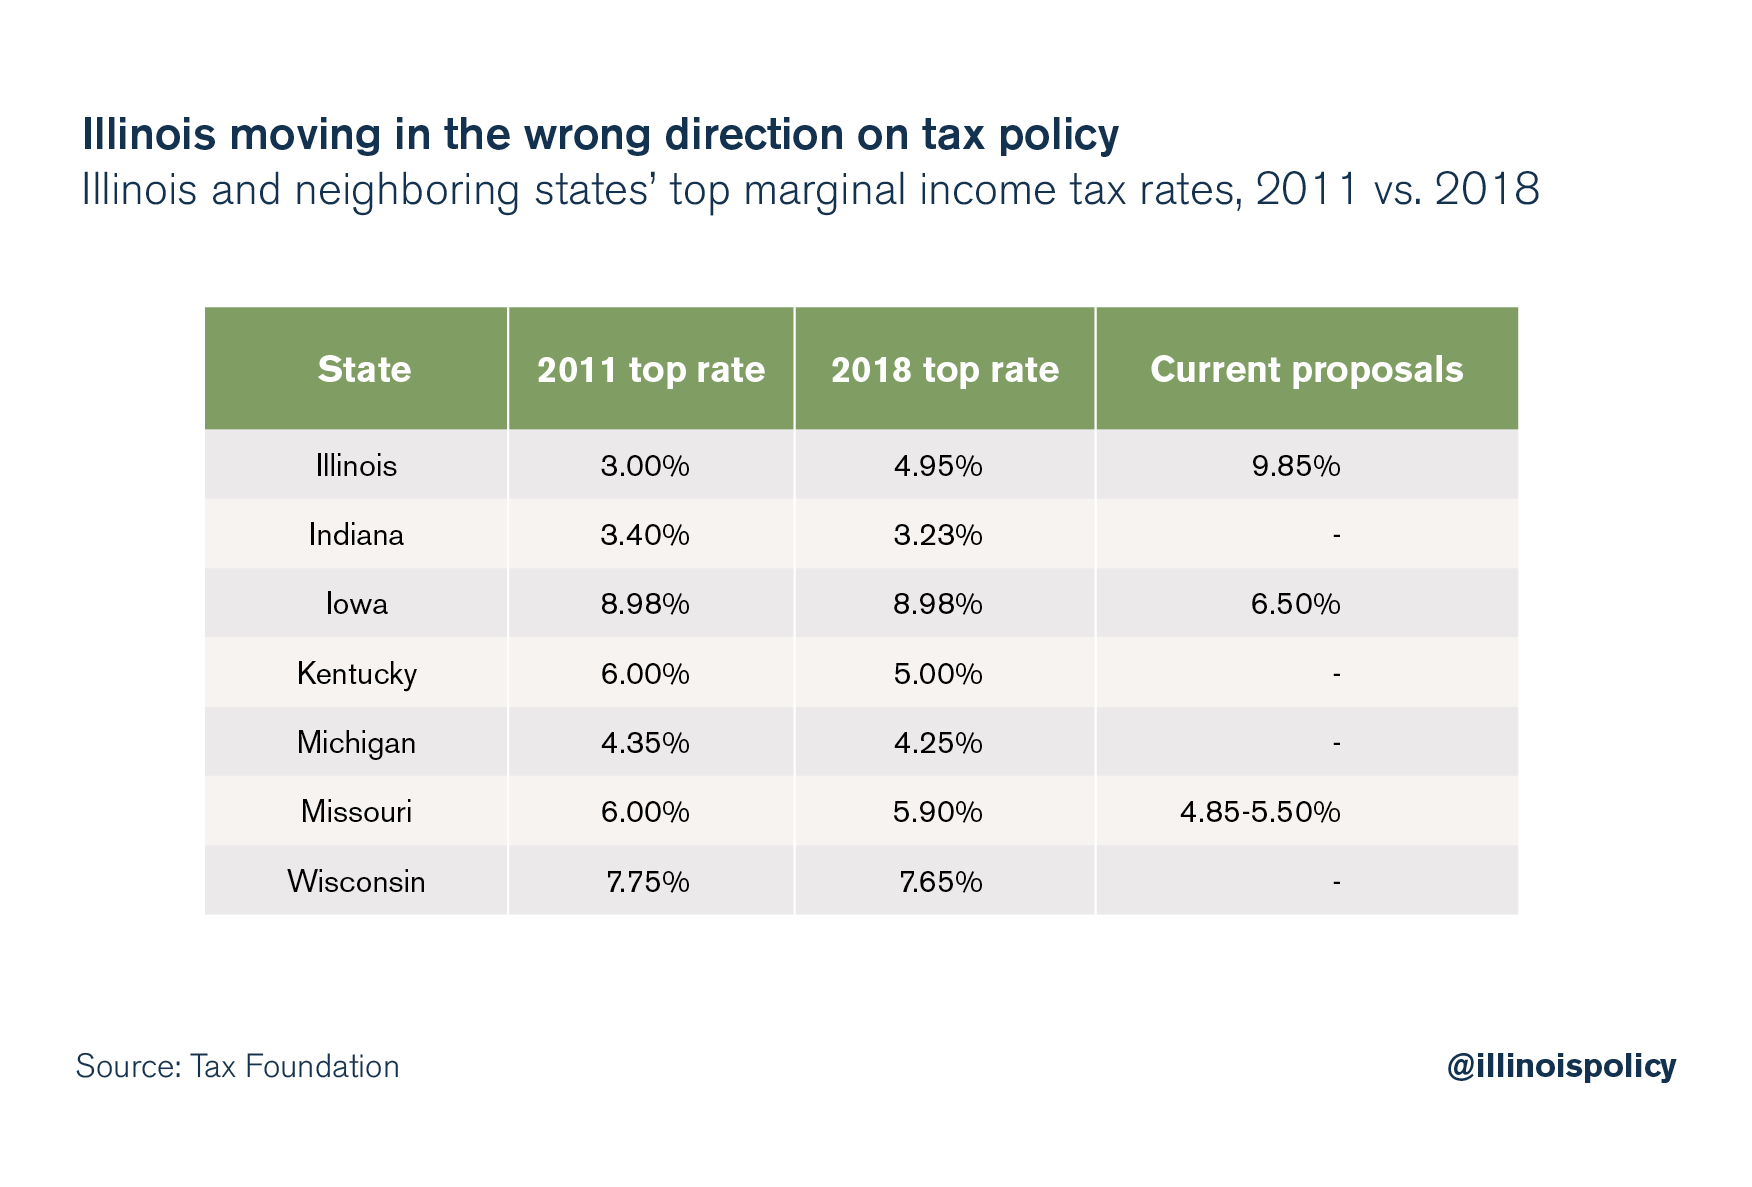 Illinois moving in the wrong direction on tax policy